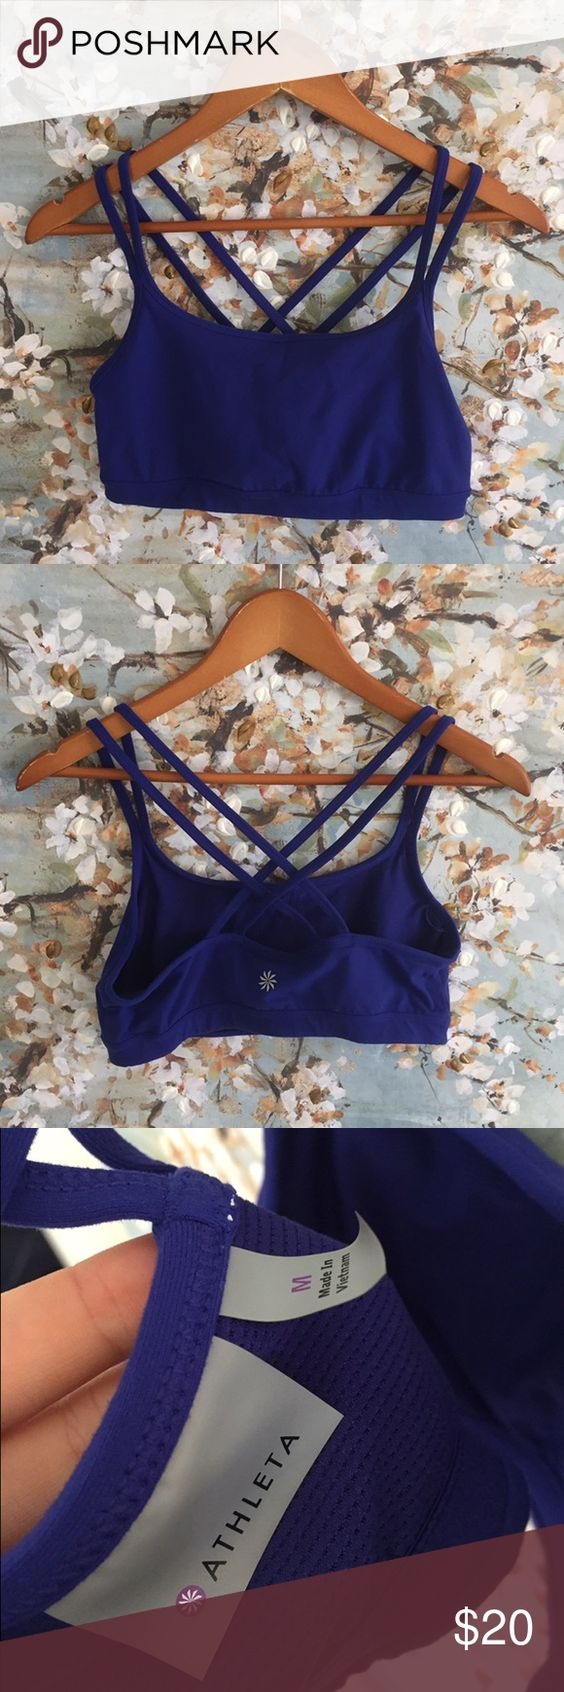 Athleta full focus bra Workout essential! MEDIUM SUPPORT WIRELESS. Holds the girls together like a team MID COVERAGE. Lower cut neckline offers just-right coverage for the girls Athleta Intimates & Sleepwear Bras